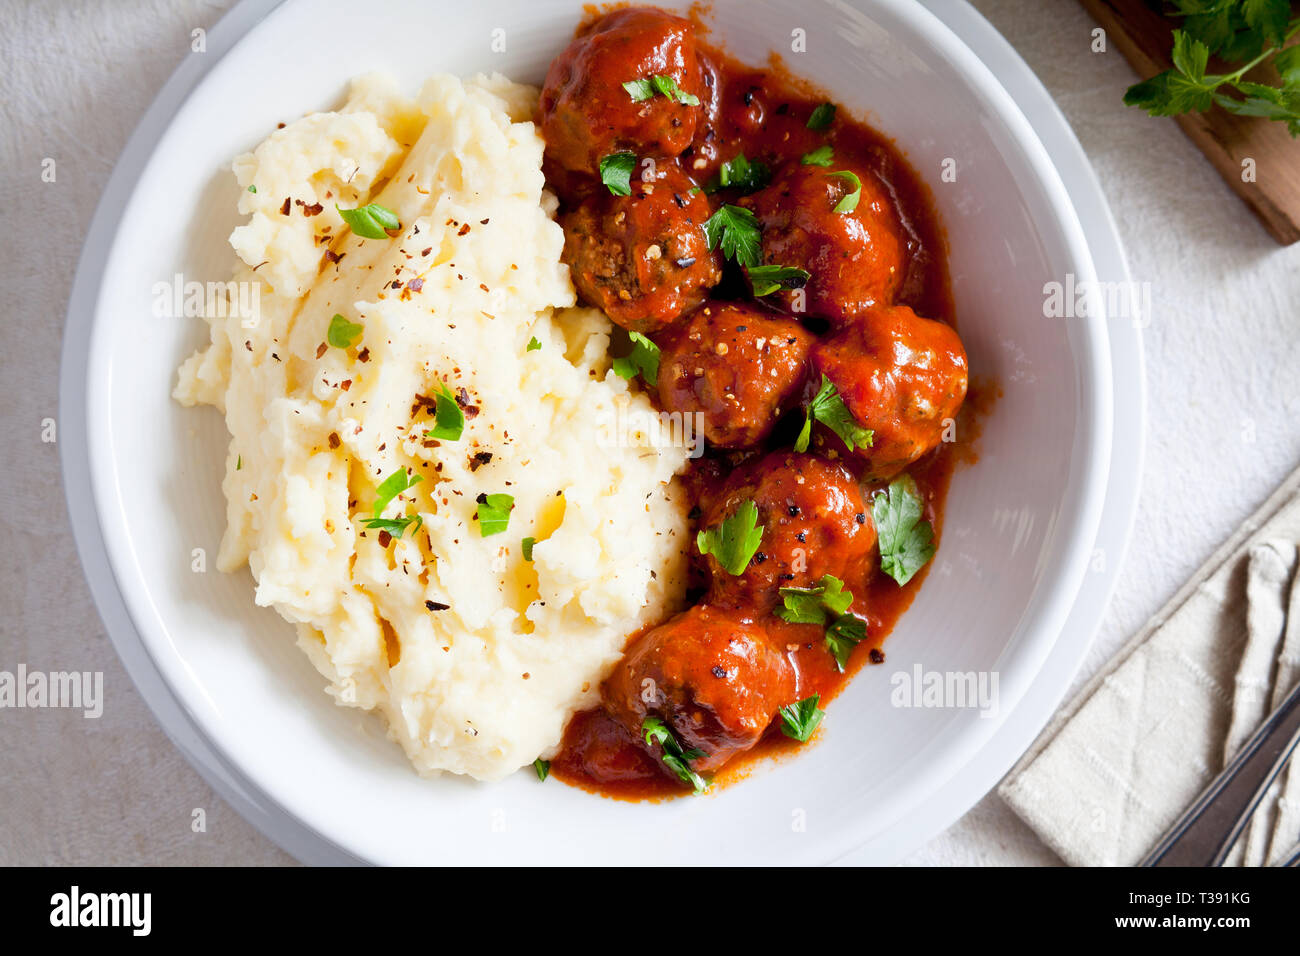 Bowl of homemade meatballs with mashed potatoes and tomato sauce - Stock Image